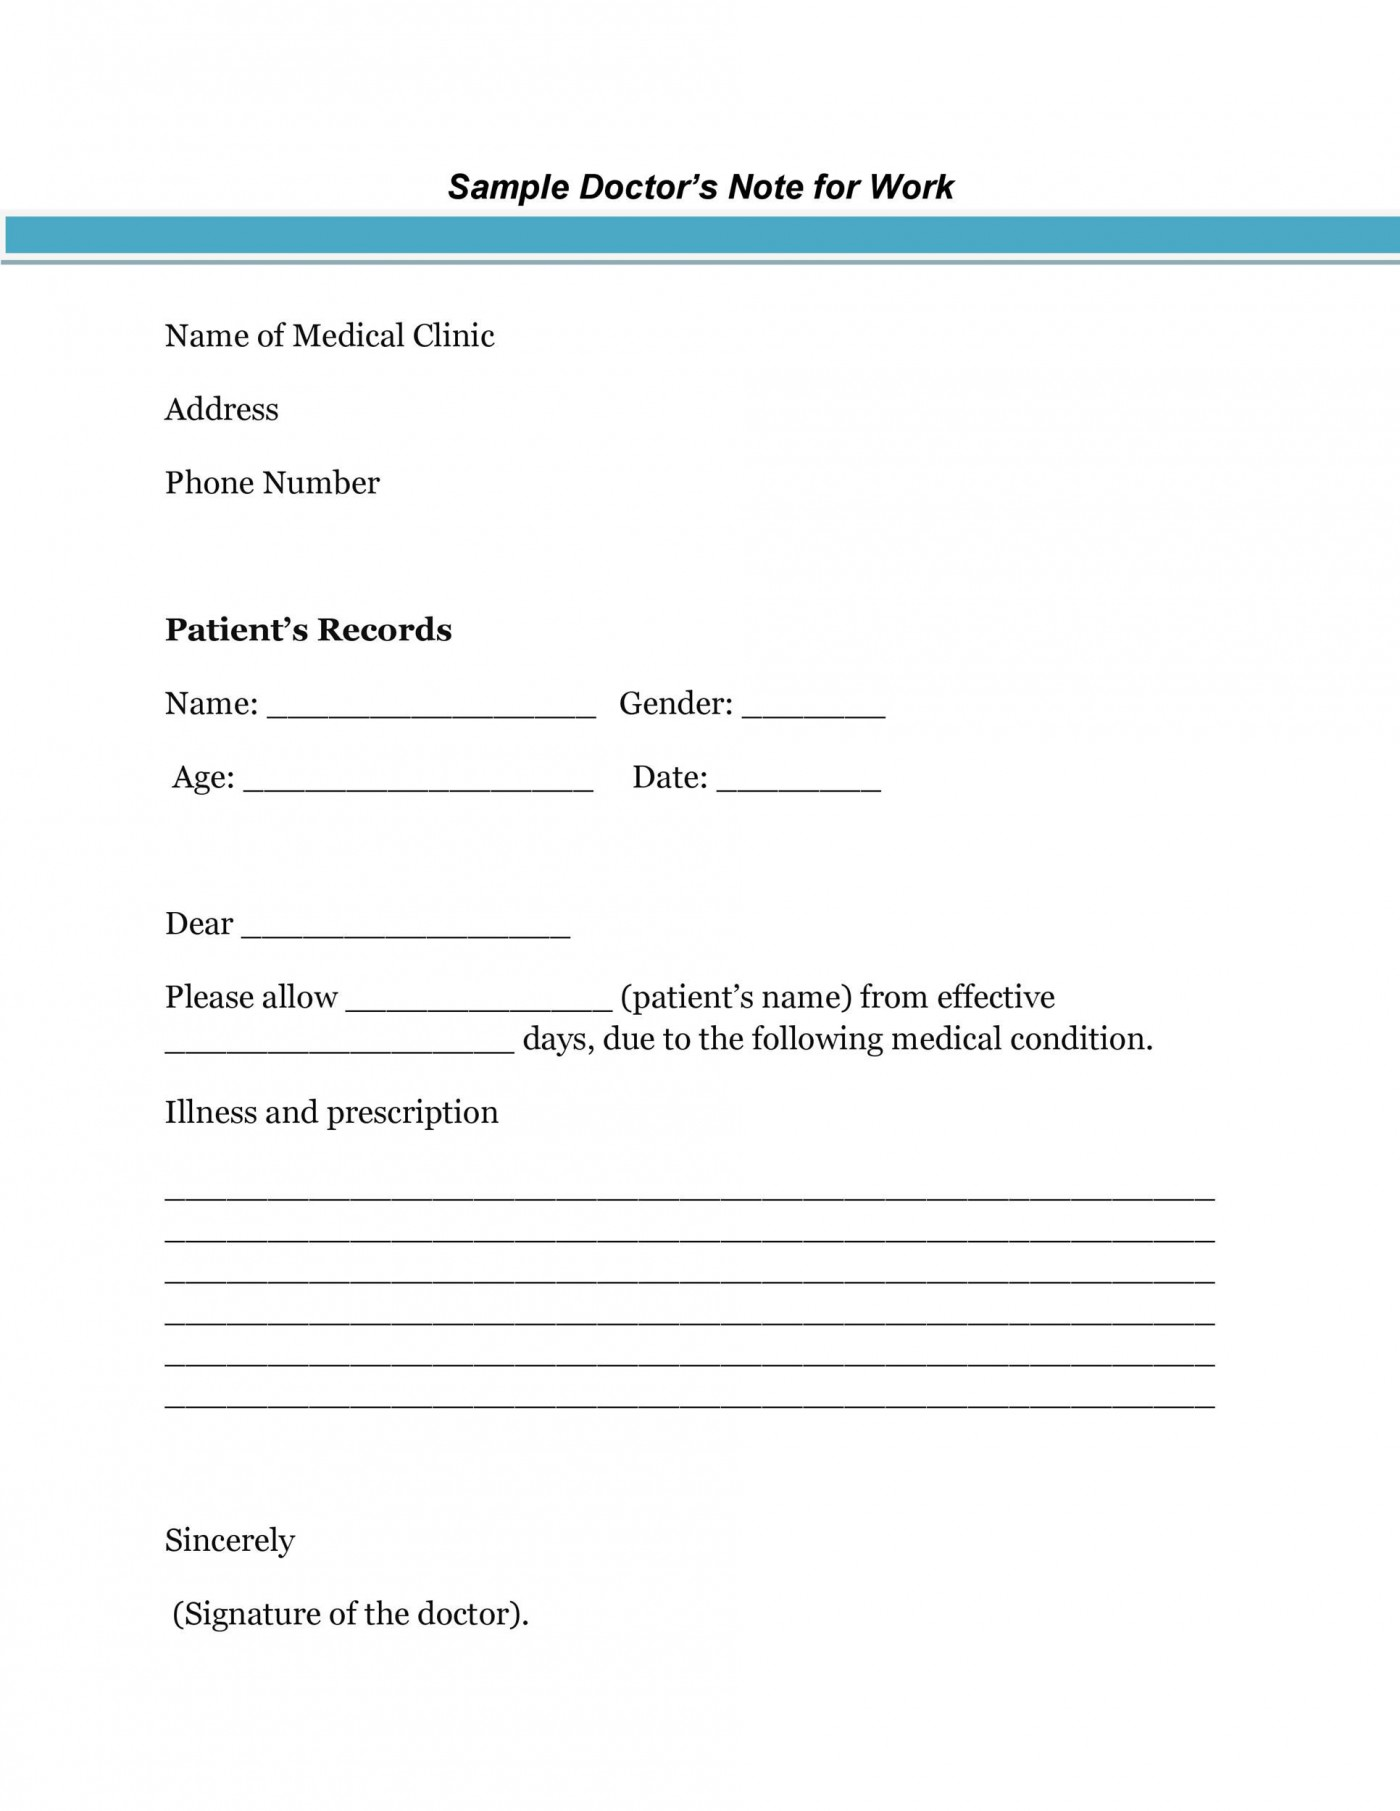 003 Awful Urgent Care Doctor Note Template High Resolution  Sample Fake Doctor' Printable1400